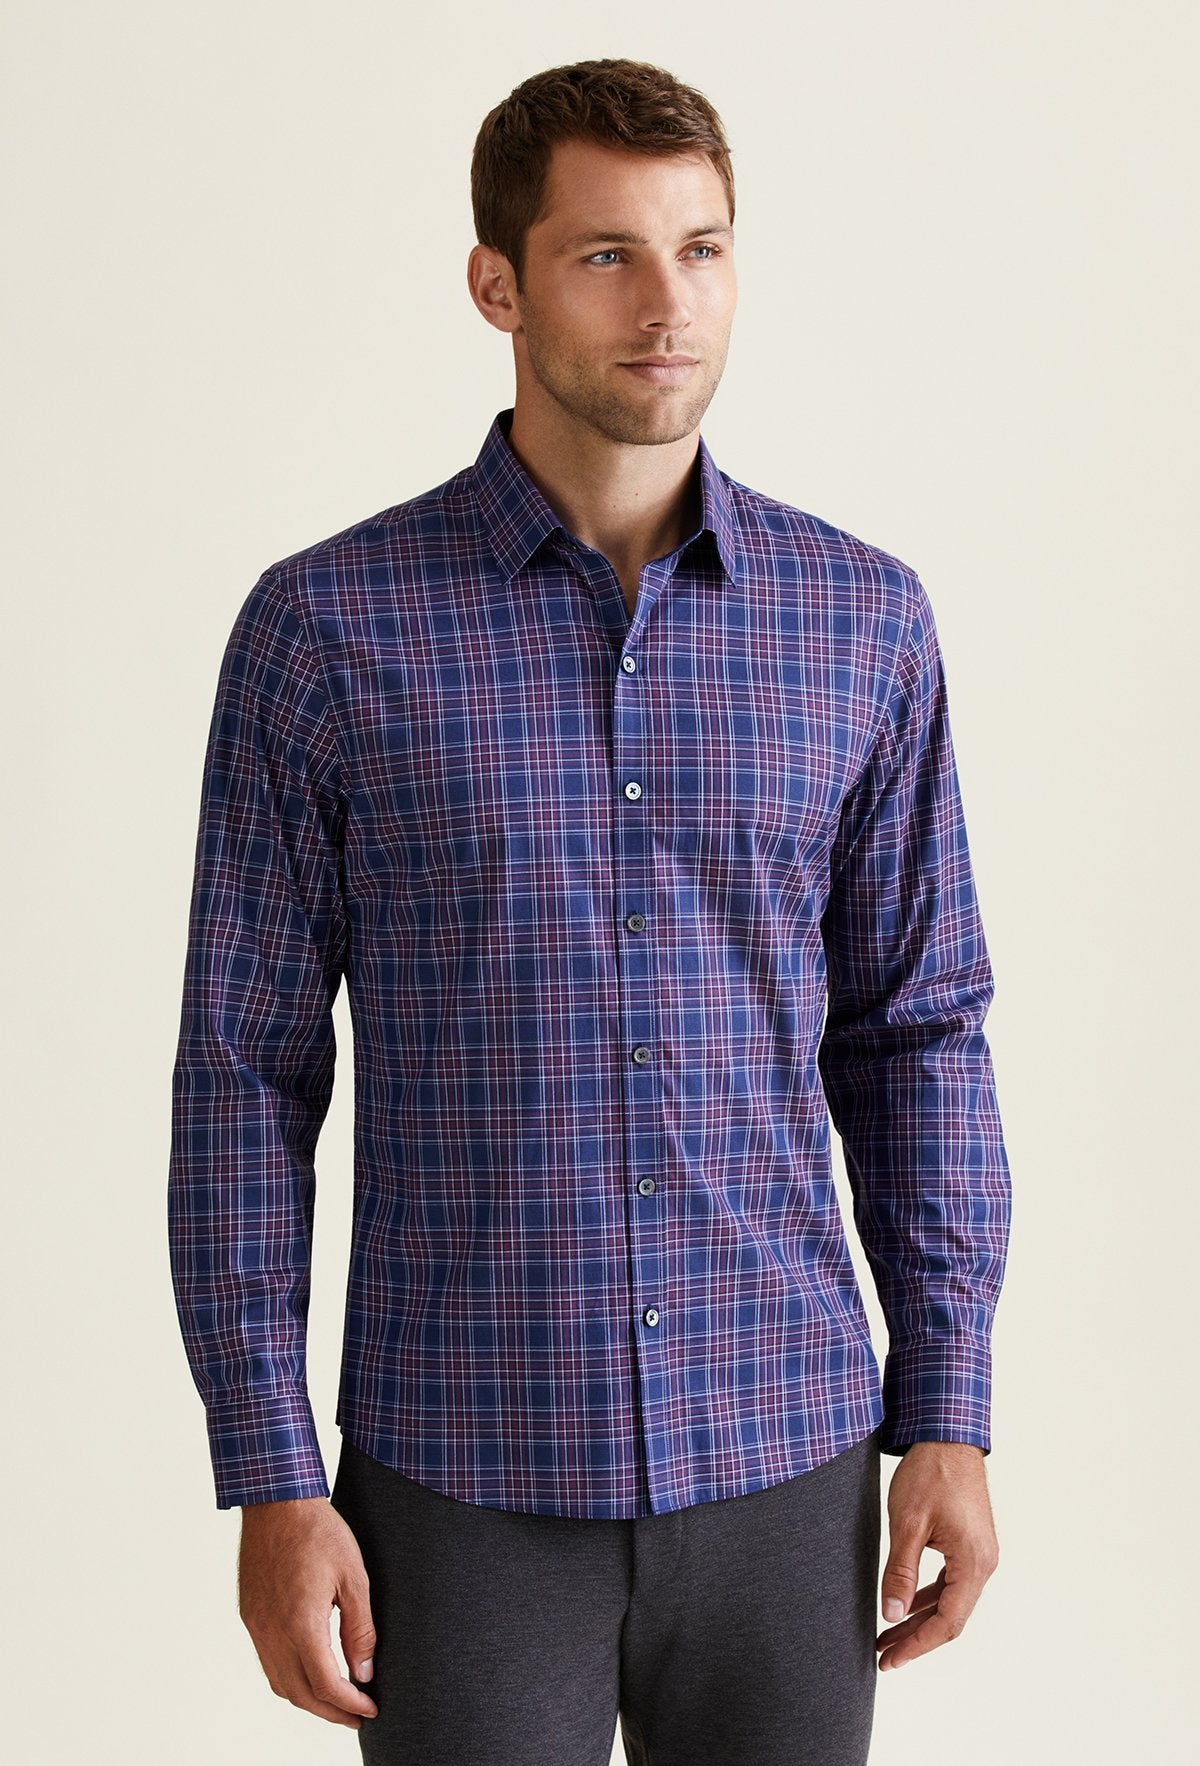 blue and purple plaid shirt for men. 100% cotton with long sleeves